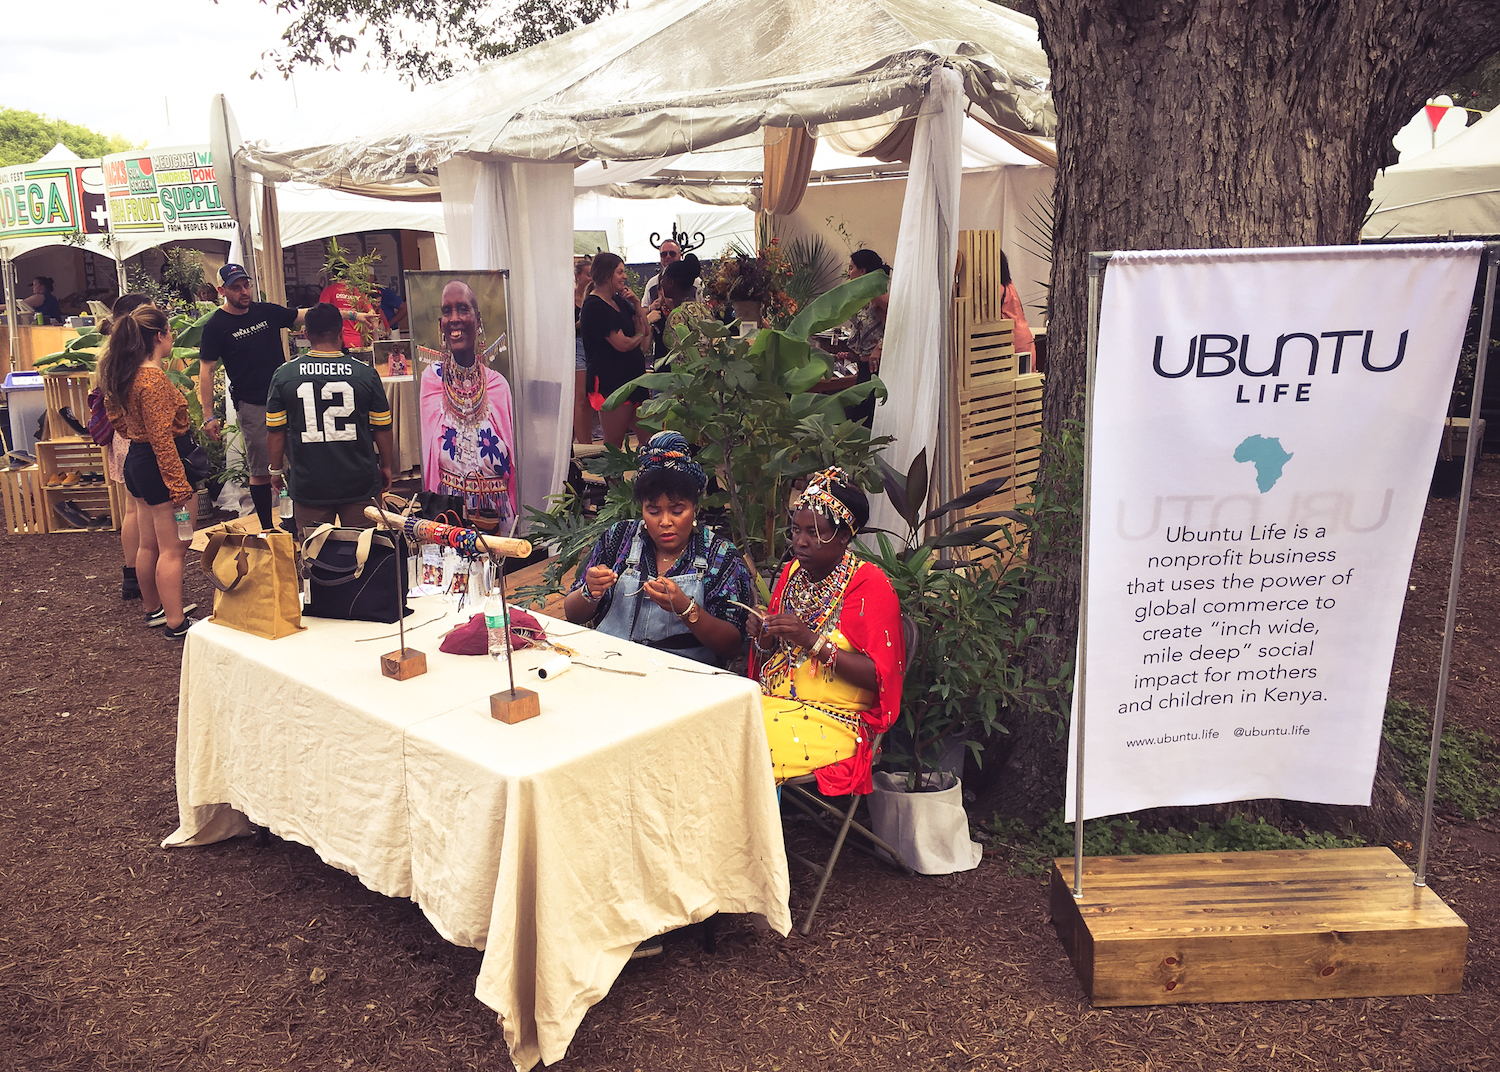 Ubuntu Life at Austin City Limits Music Festival, with Maasai maker mums hand-beading products on site as they interacted with consumers.